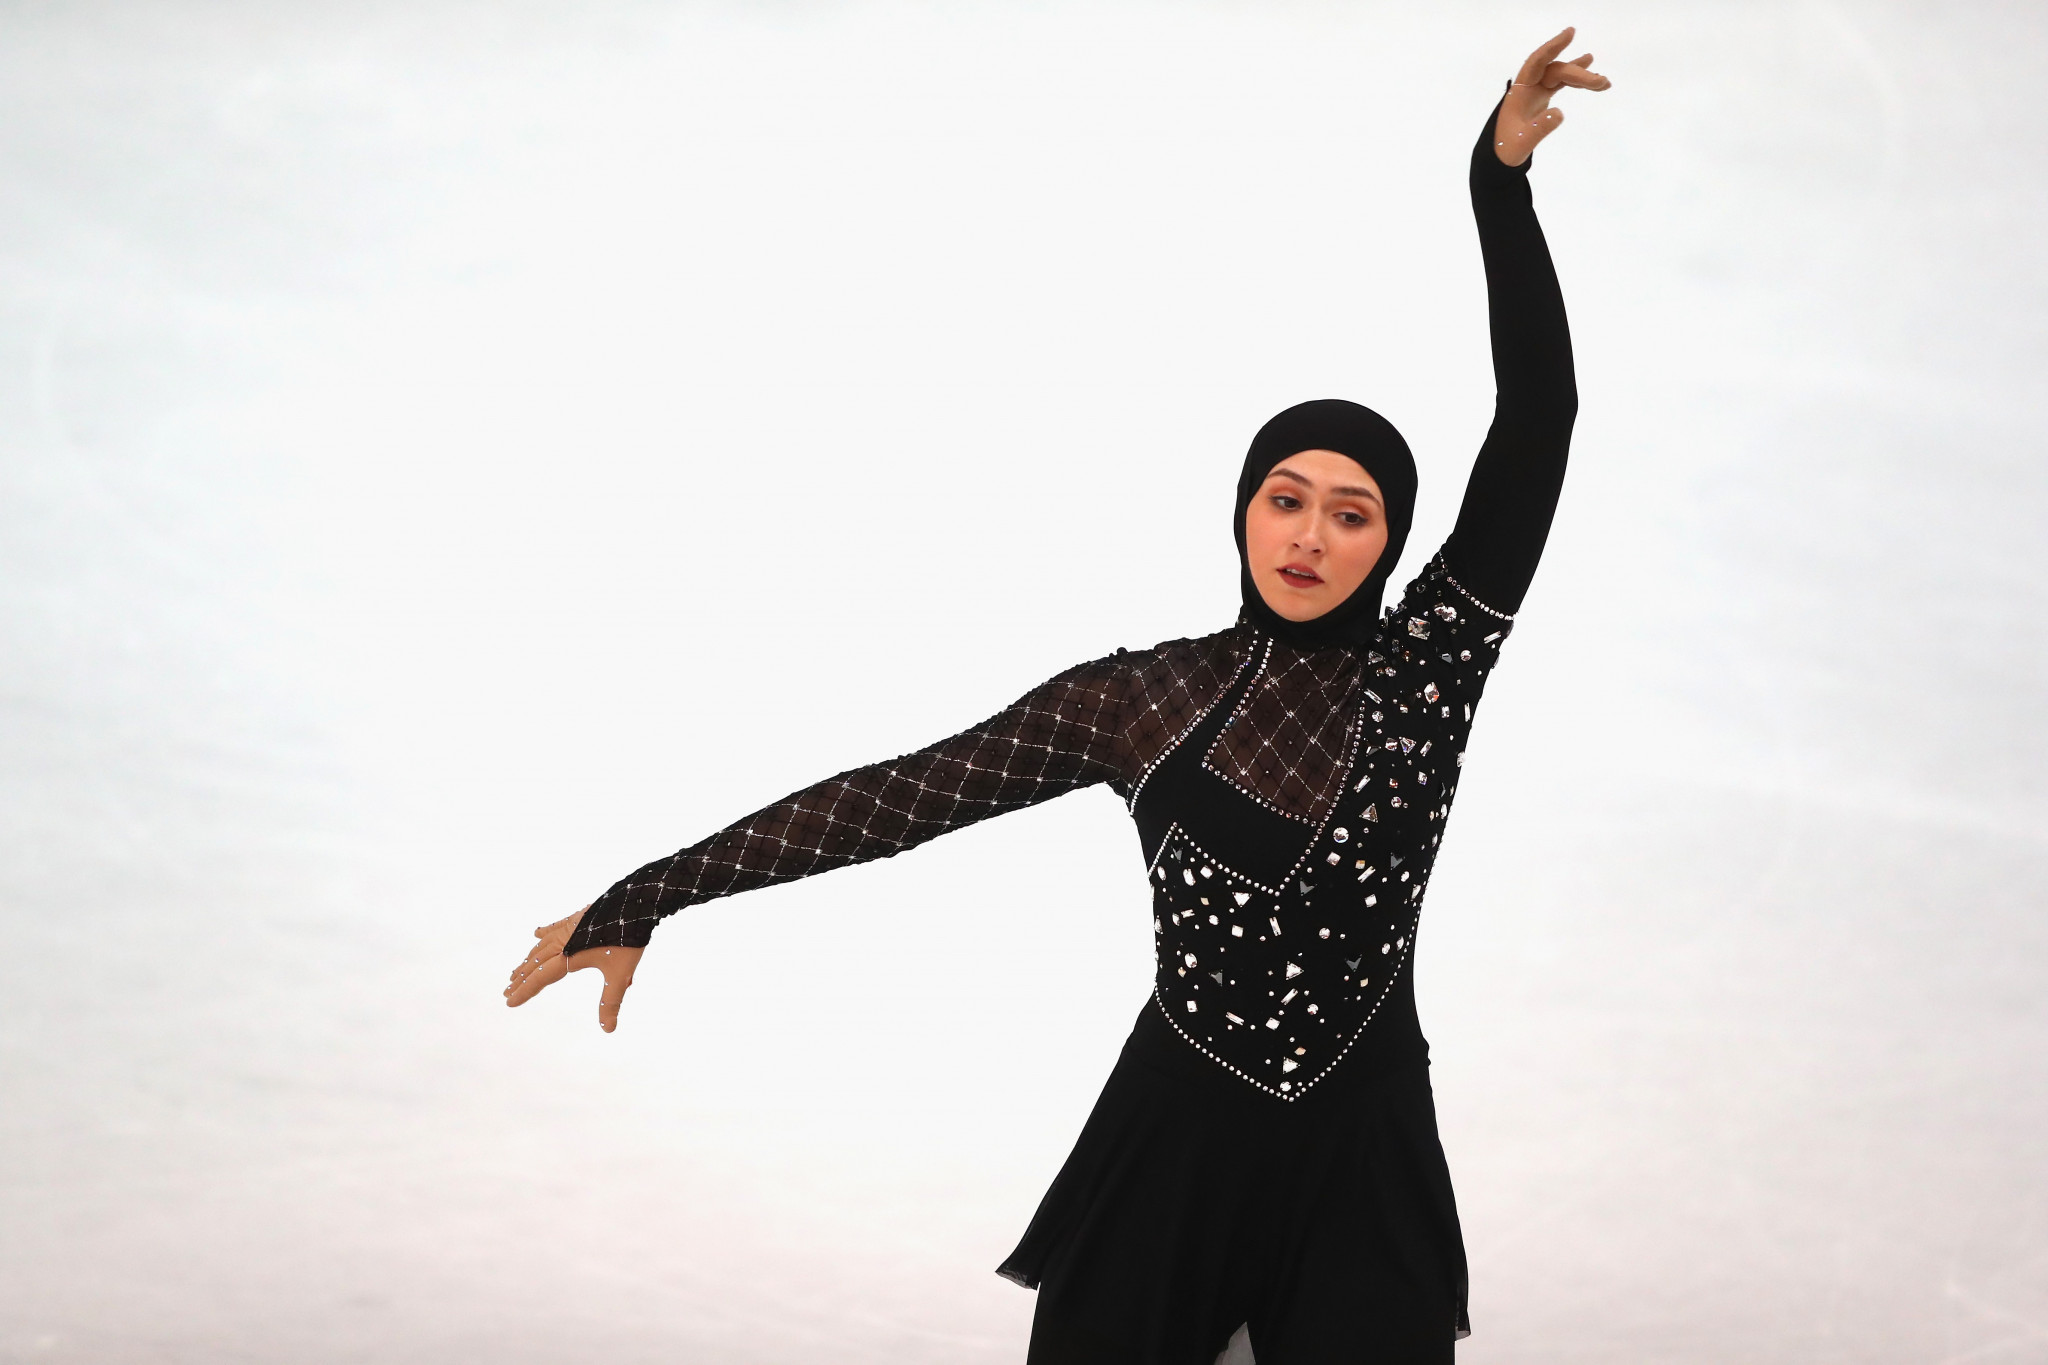 Figure skater Zahra Lari is the UAE's most well-known female athlete to have competed at university level ©Getty Images